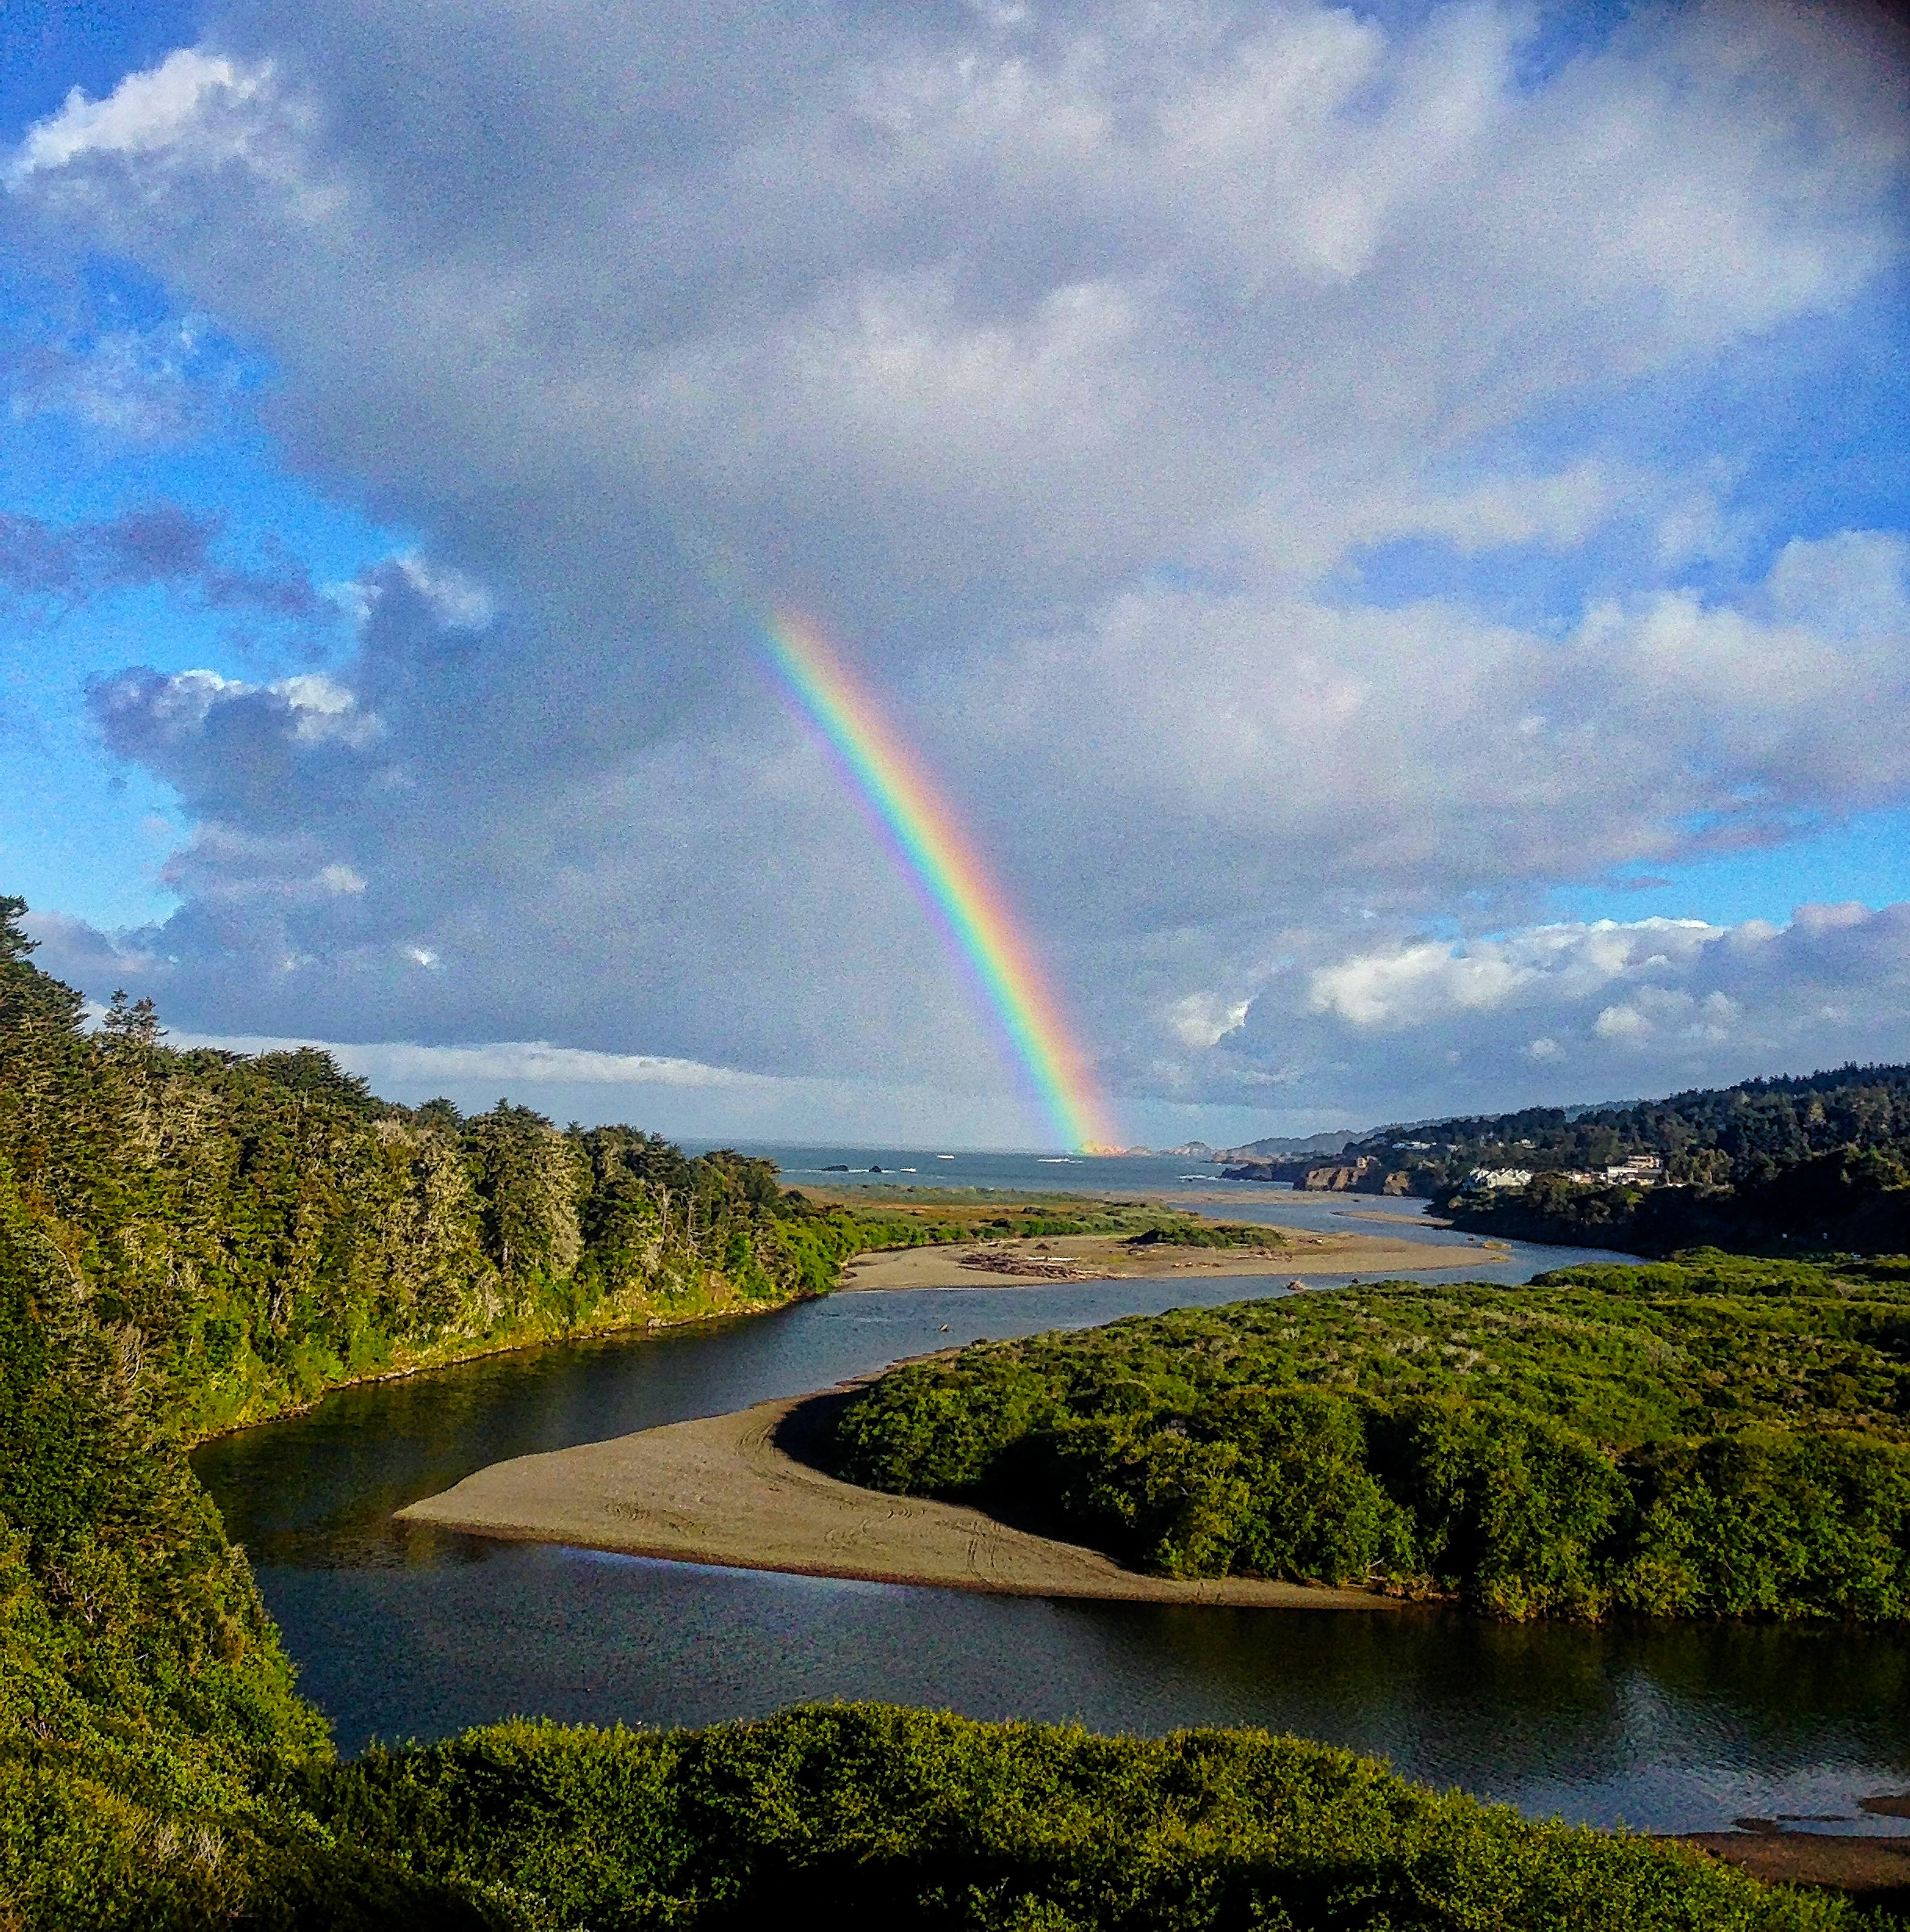 beautiful rainbow – Mendonoma Sightings